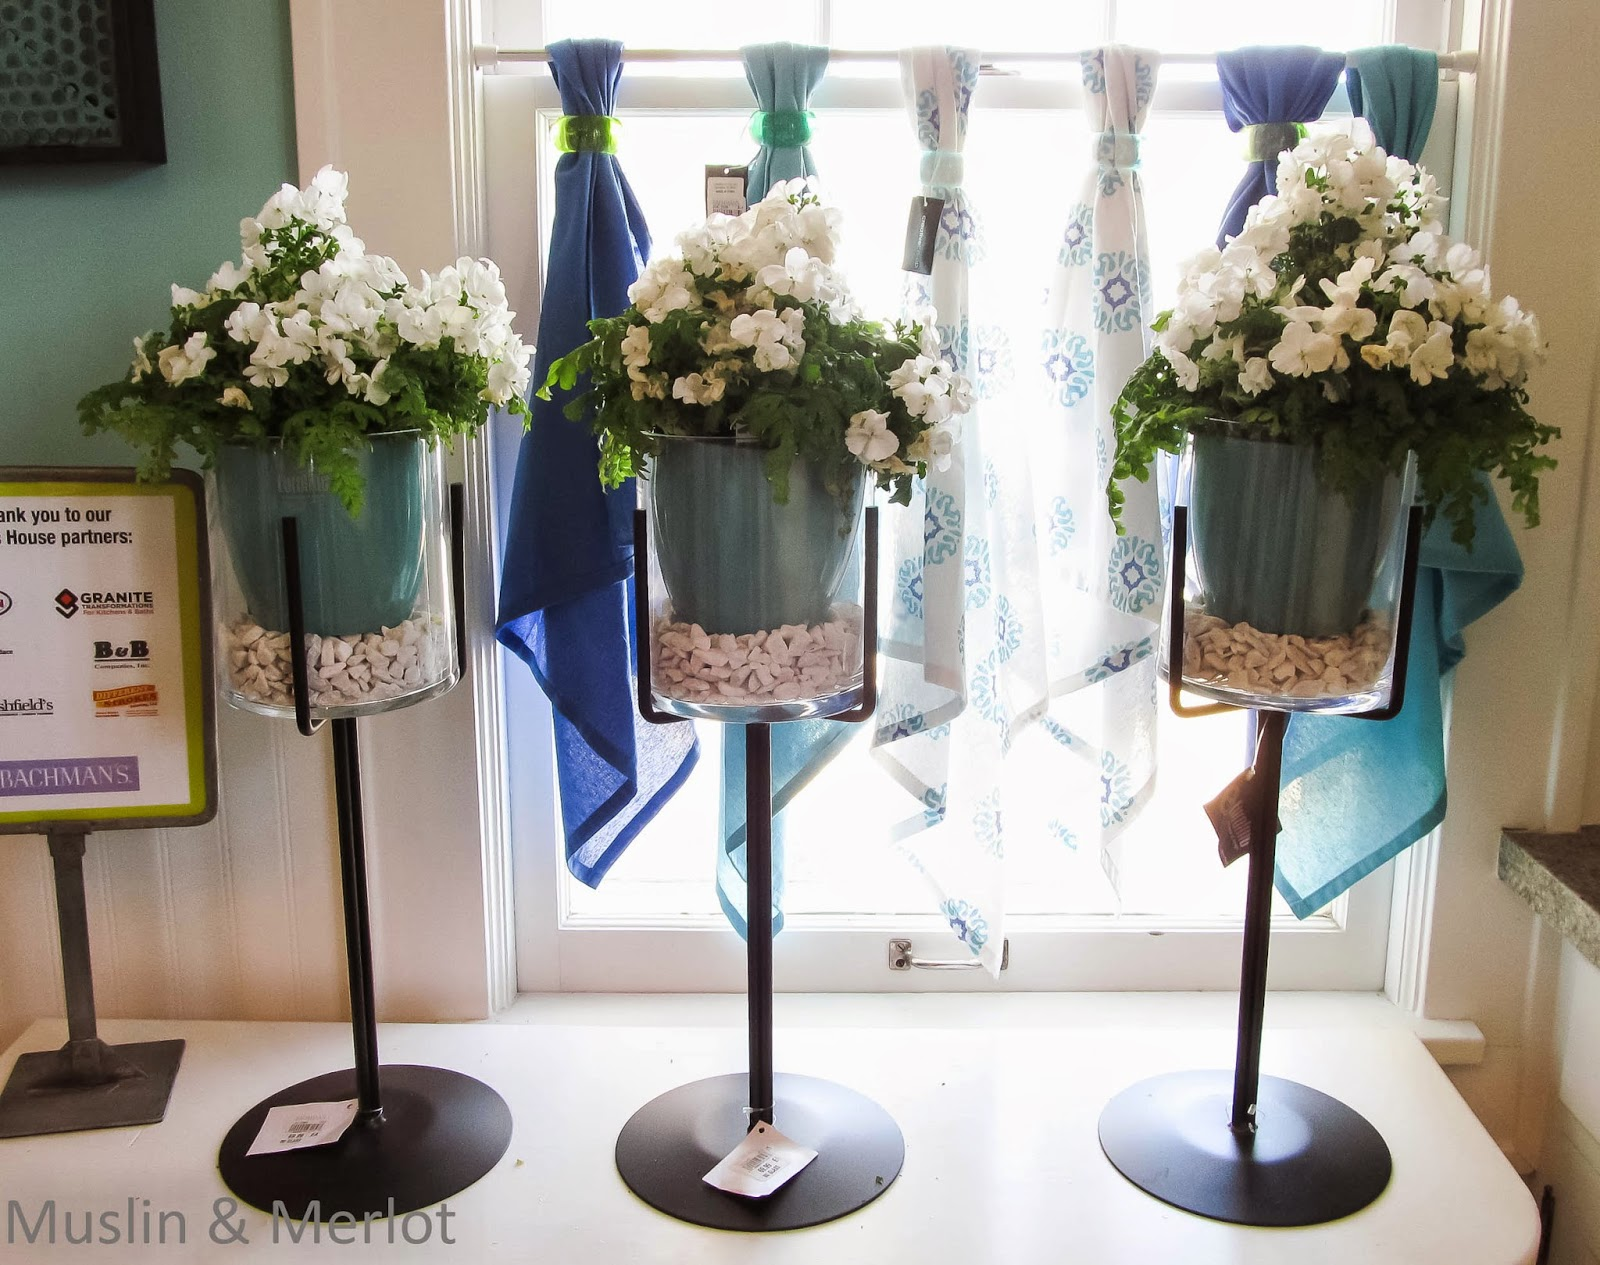 Dishtowels & napkin rings window treatment. The plant pots are being help up by candle-holders.